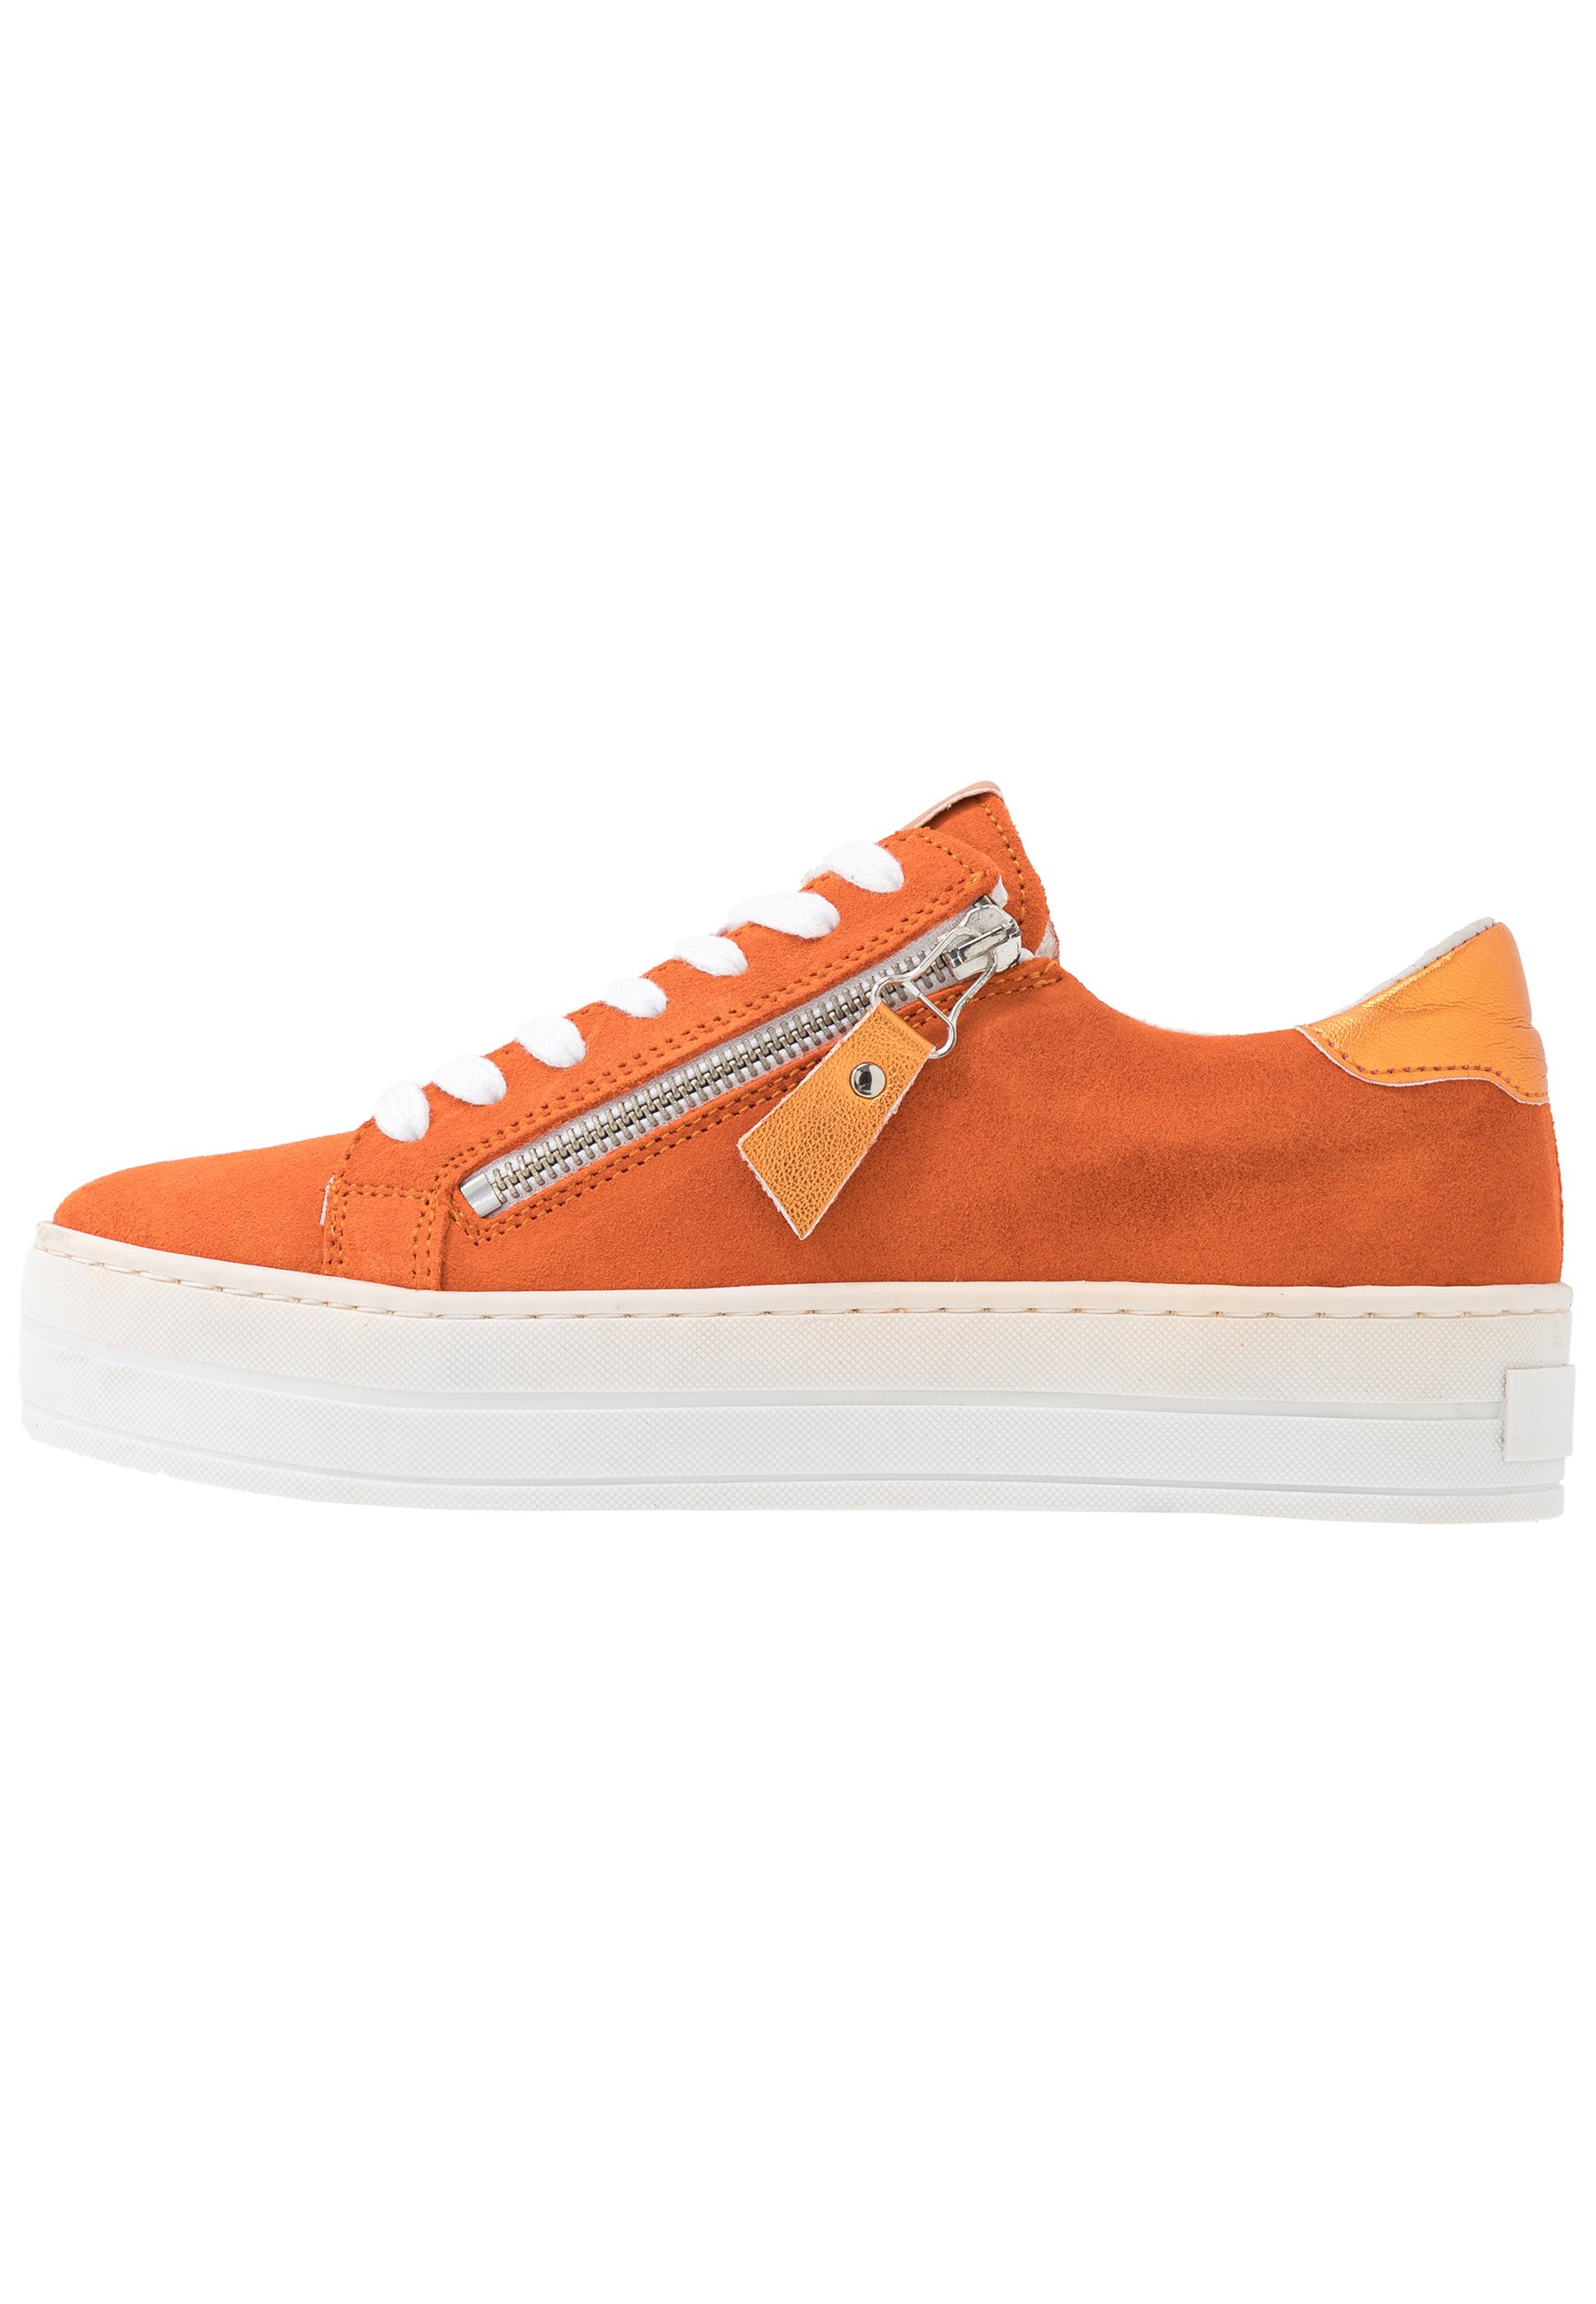 Steven New York By Spm Pomme - Sneakers Orange